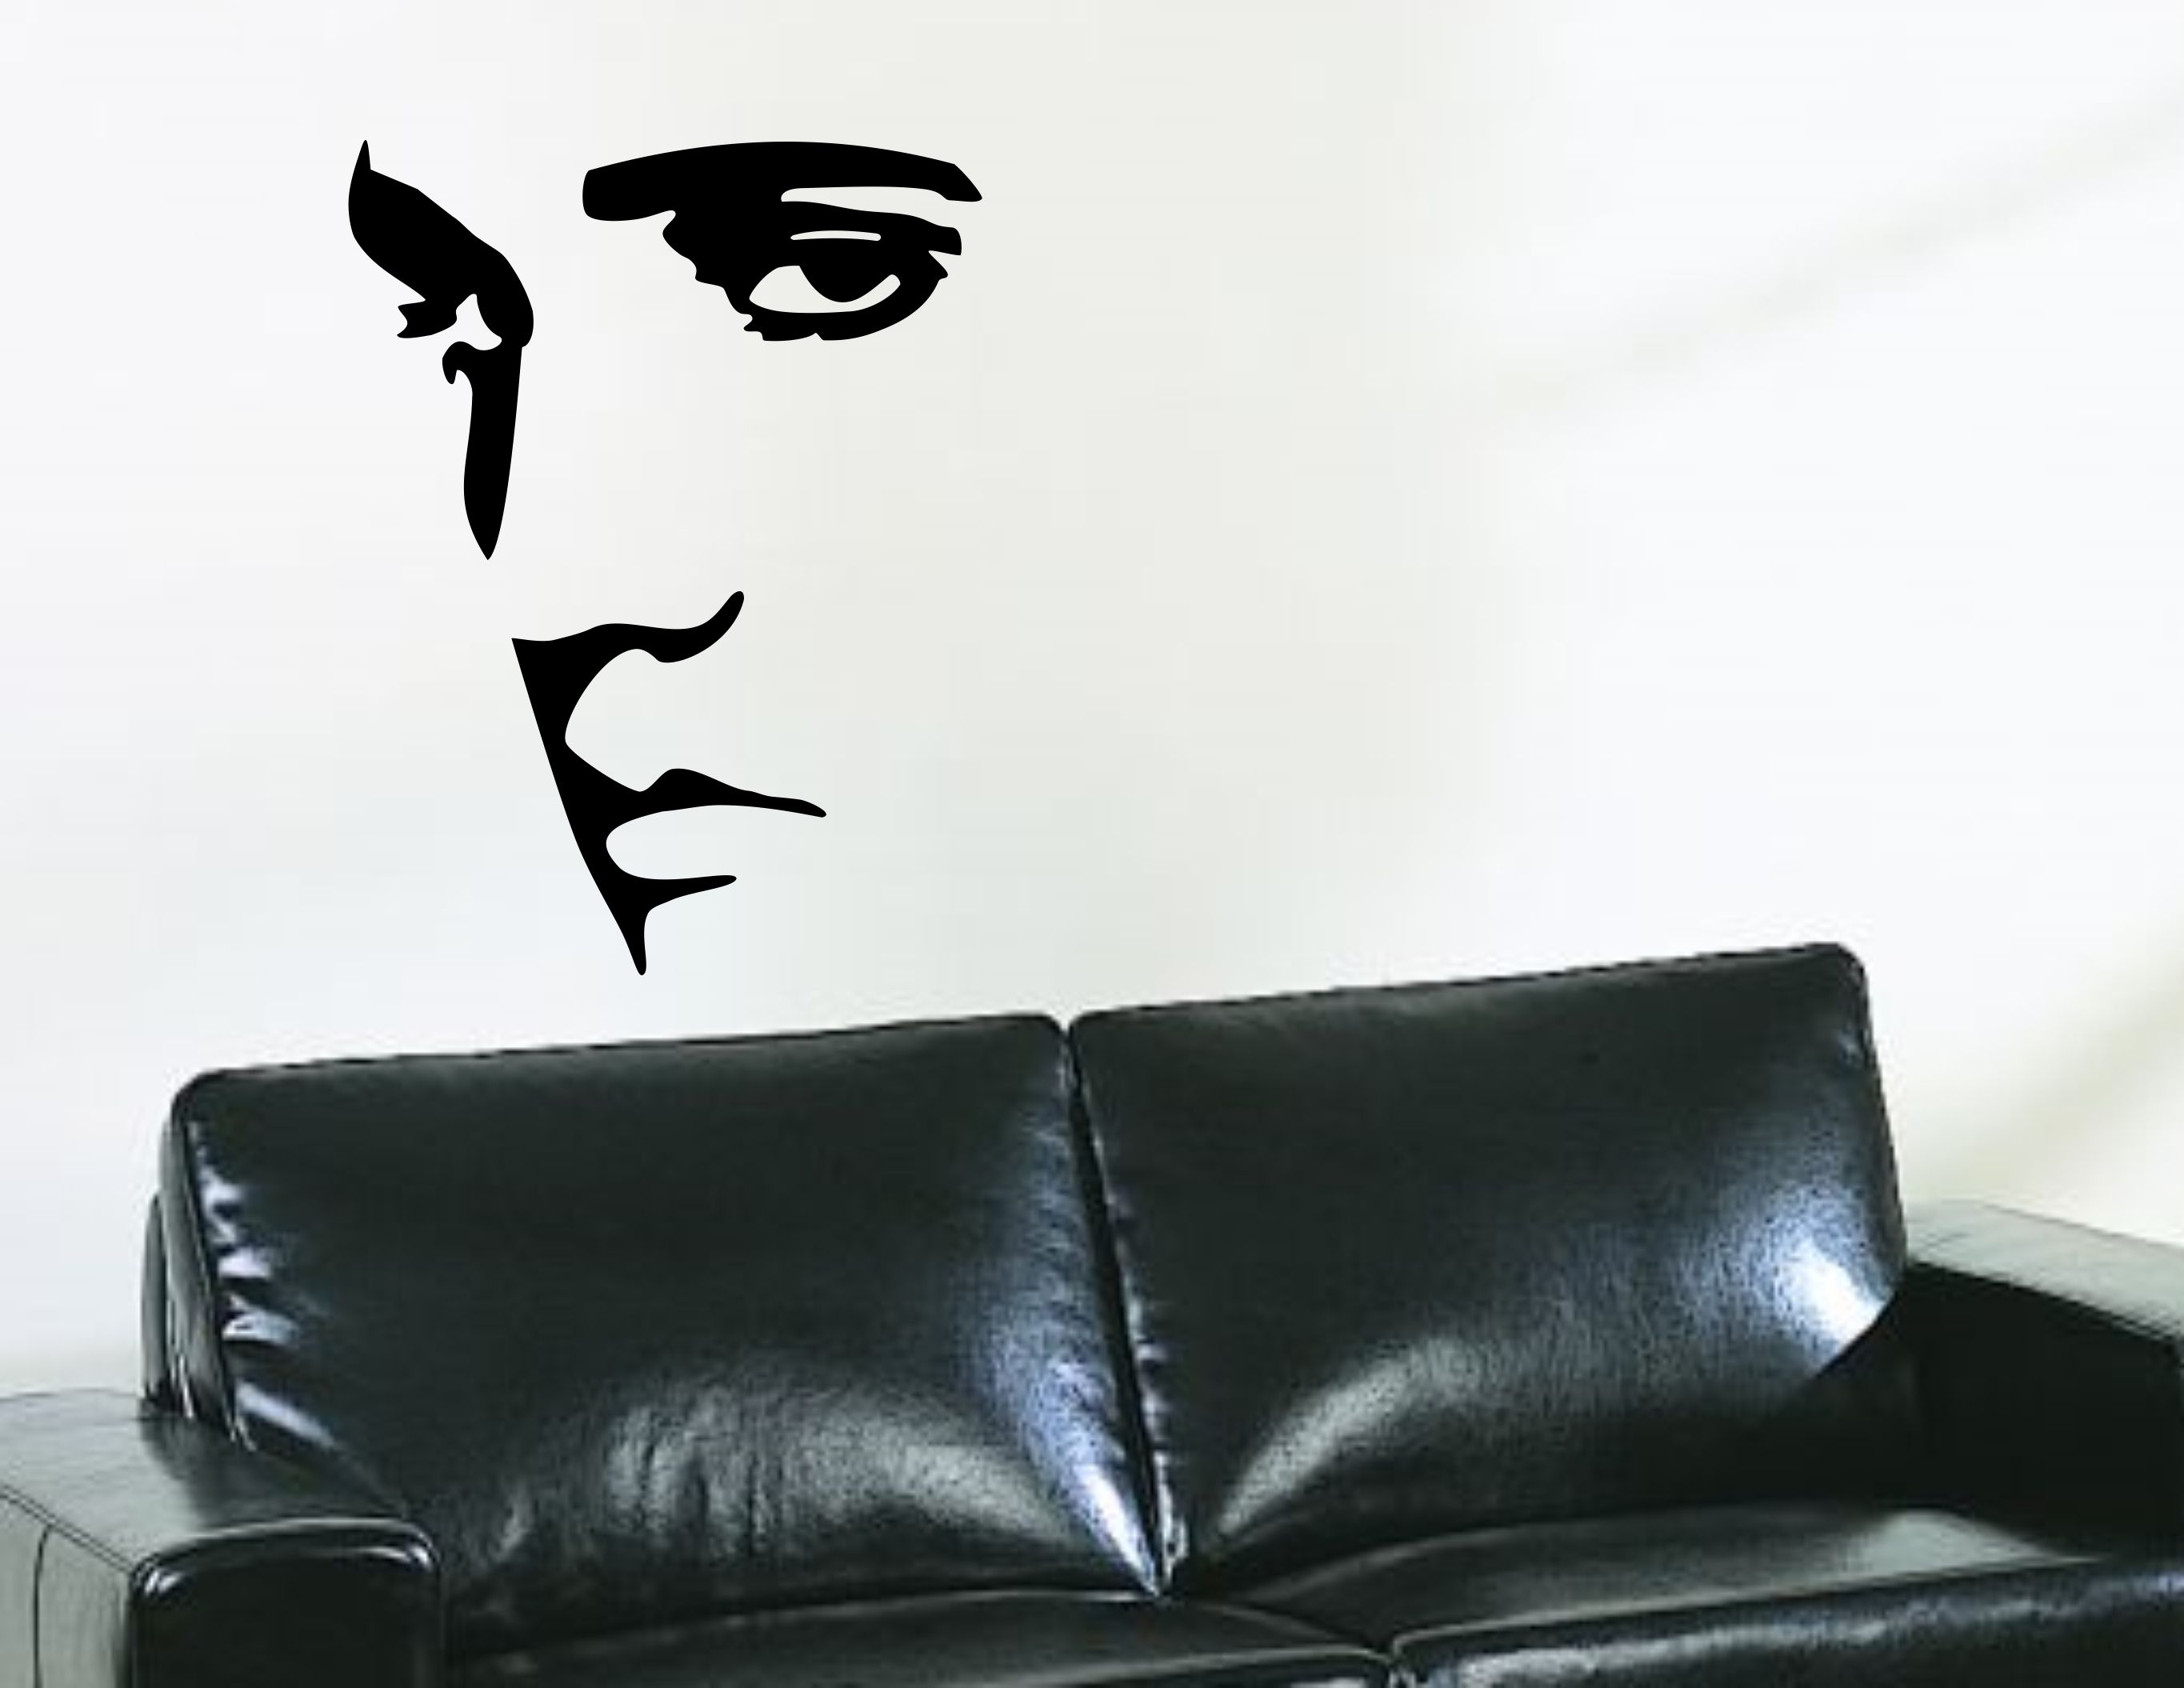 Large elvis presley wall decal vinyl sticker silhouette wall art large elvis presley wall decal vinyl sticker silhouette wall art mural from wallcrafters on etsy amipublicfo Image collections